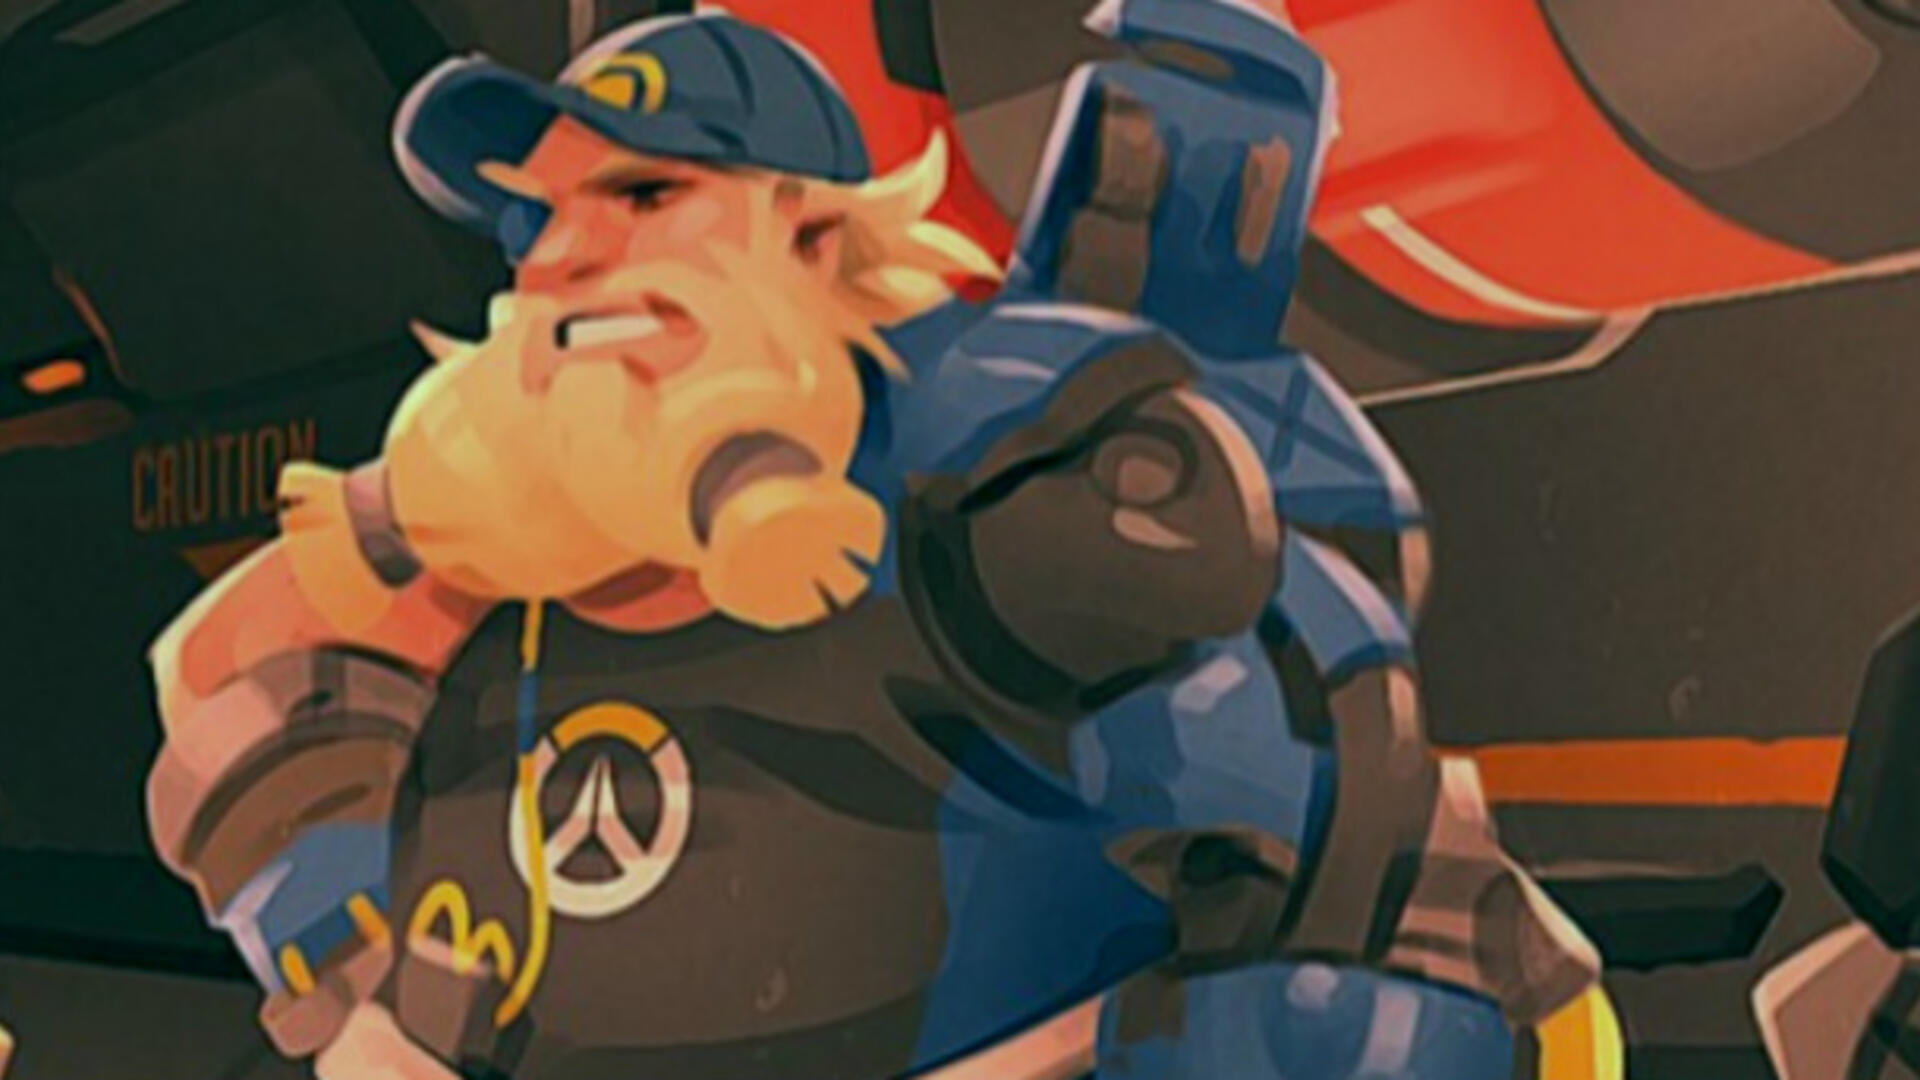 Overwatch Comic Hints At Old-School Skins For Upcoming Event